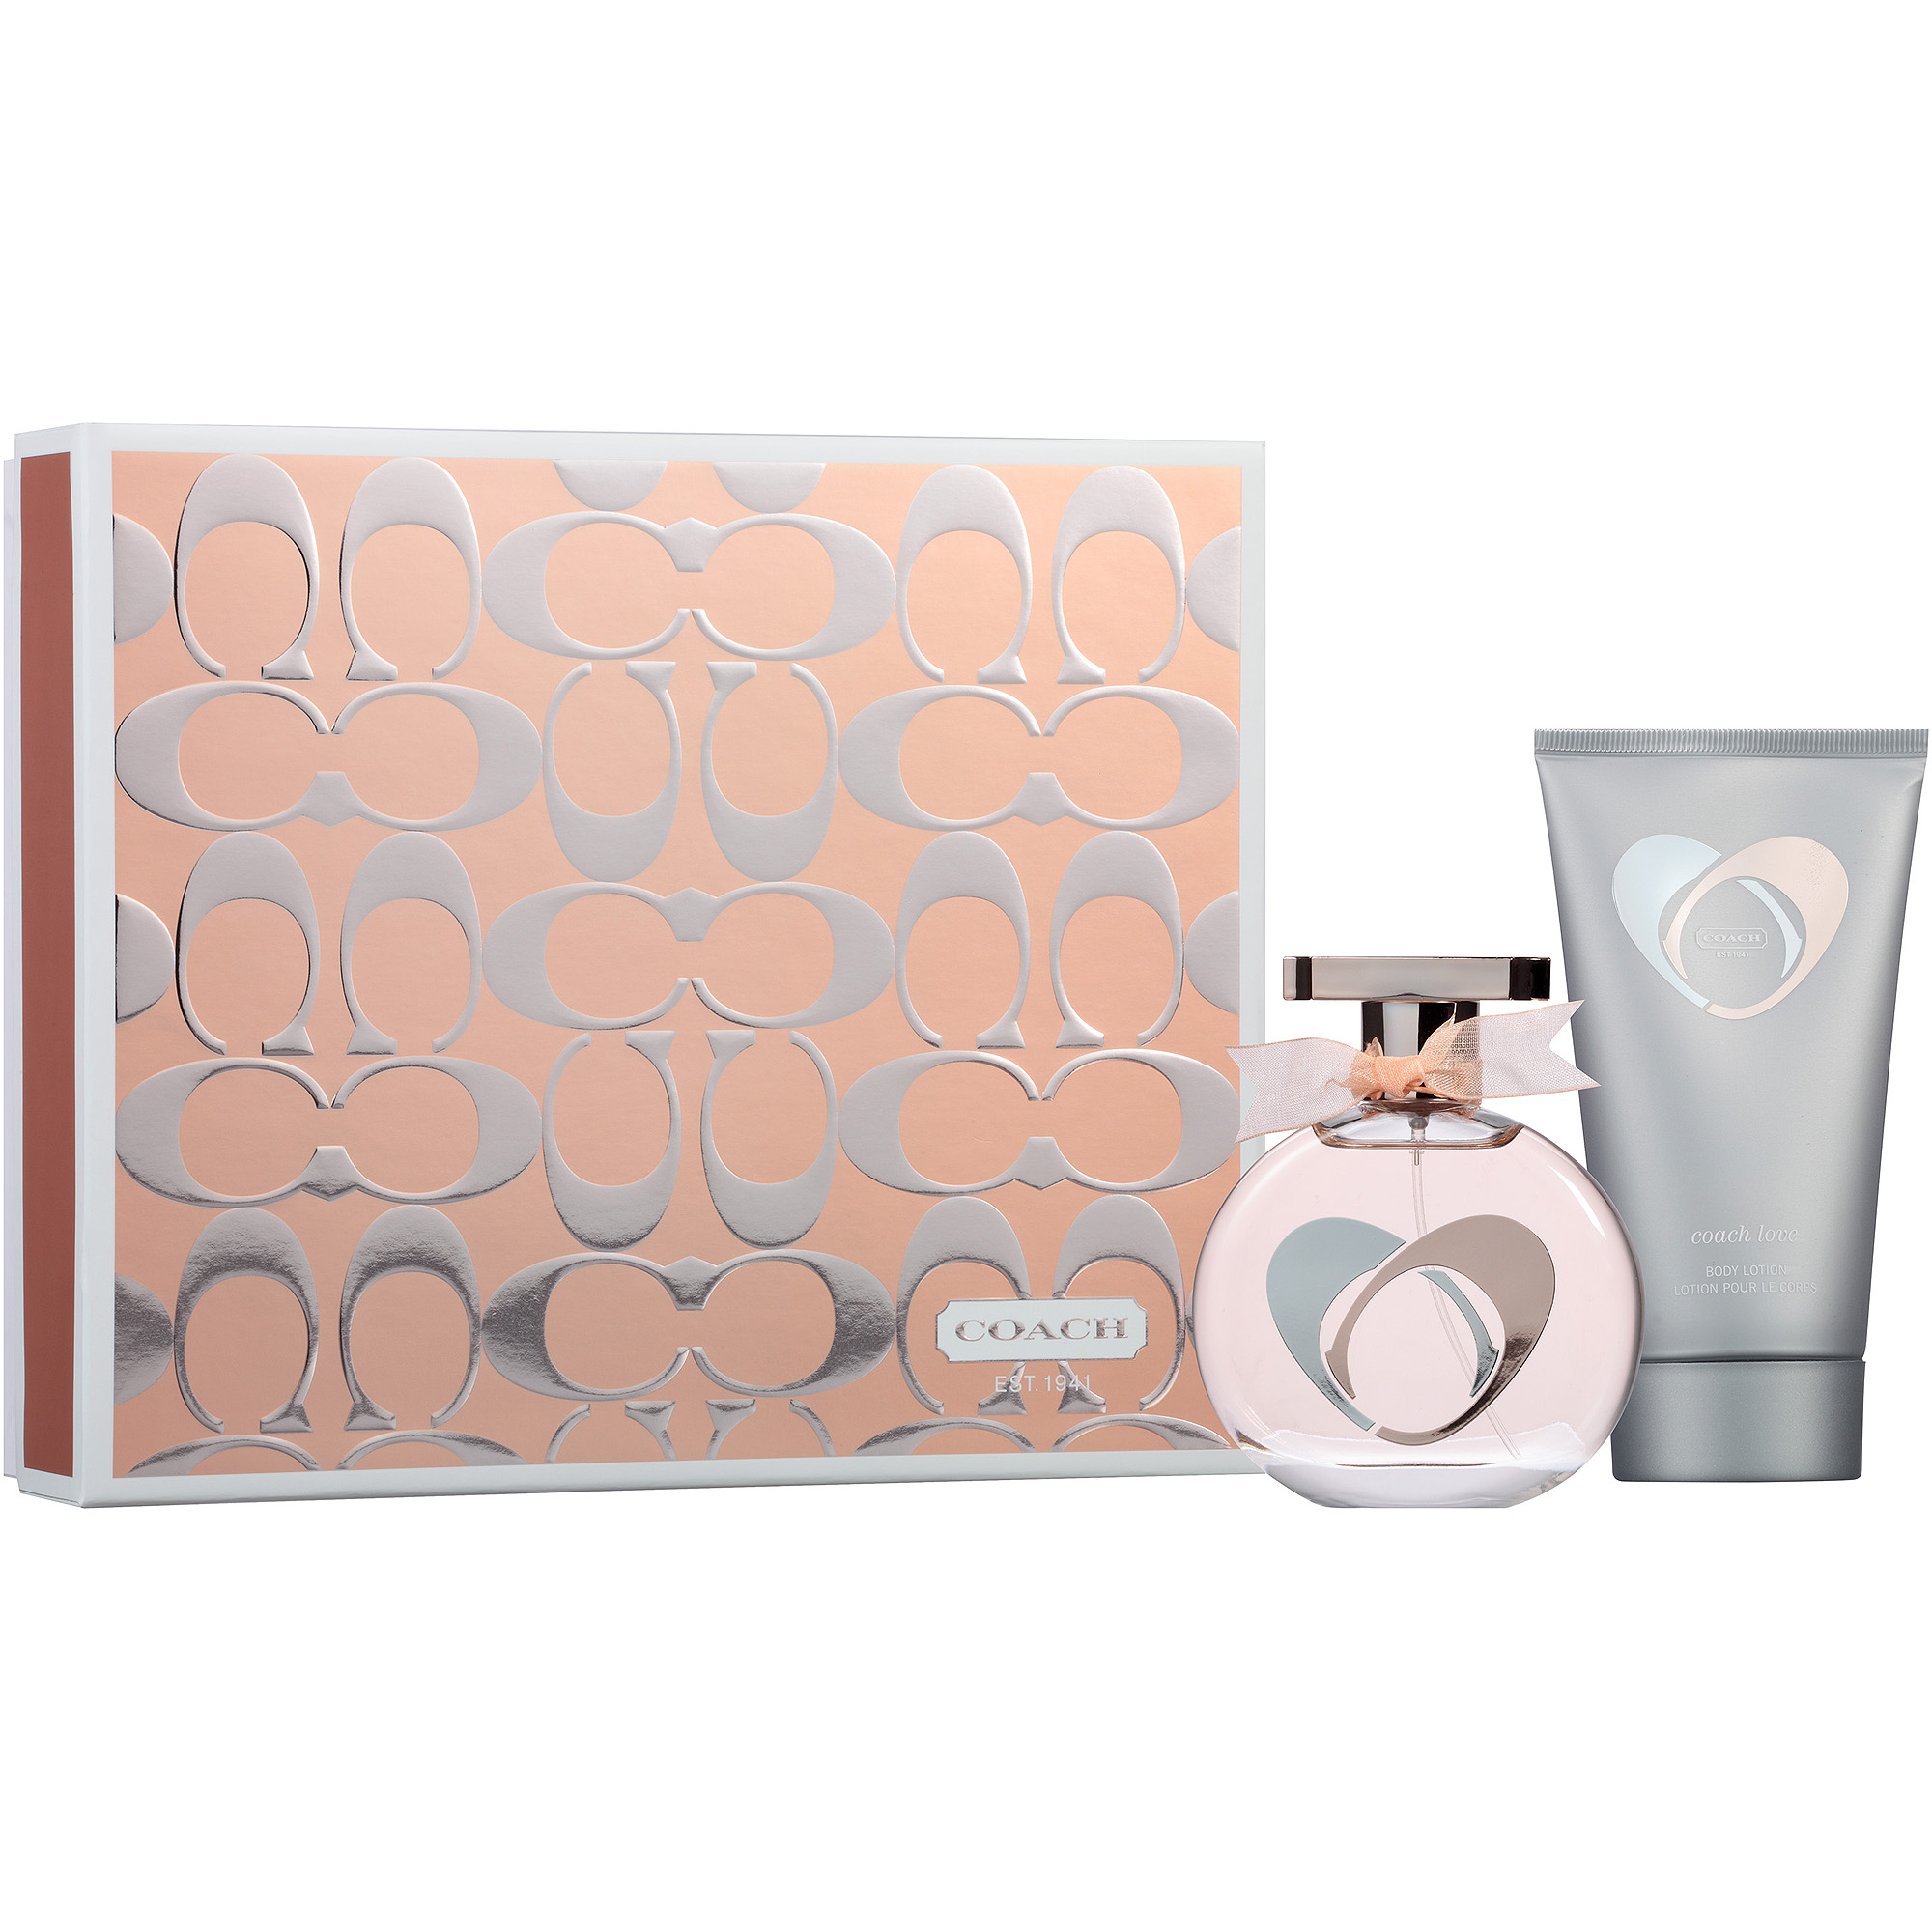 Coach Love Fragrance Gift Set for Women, 2 pc